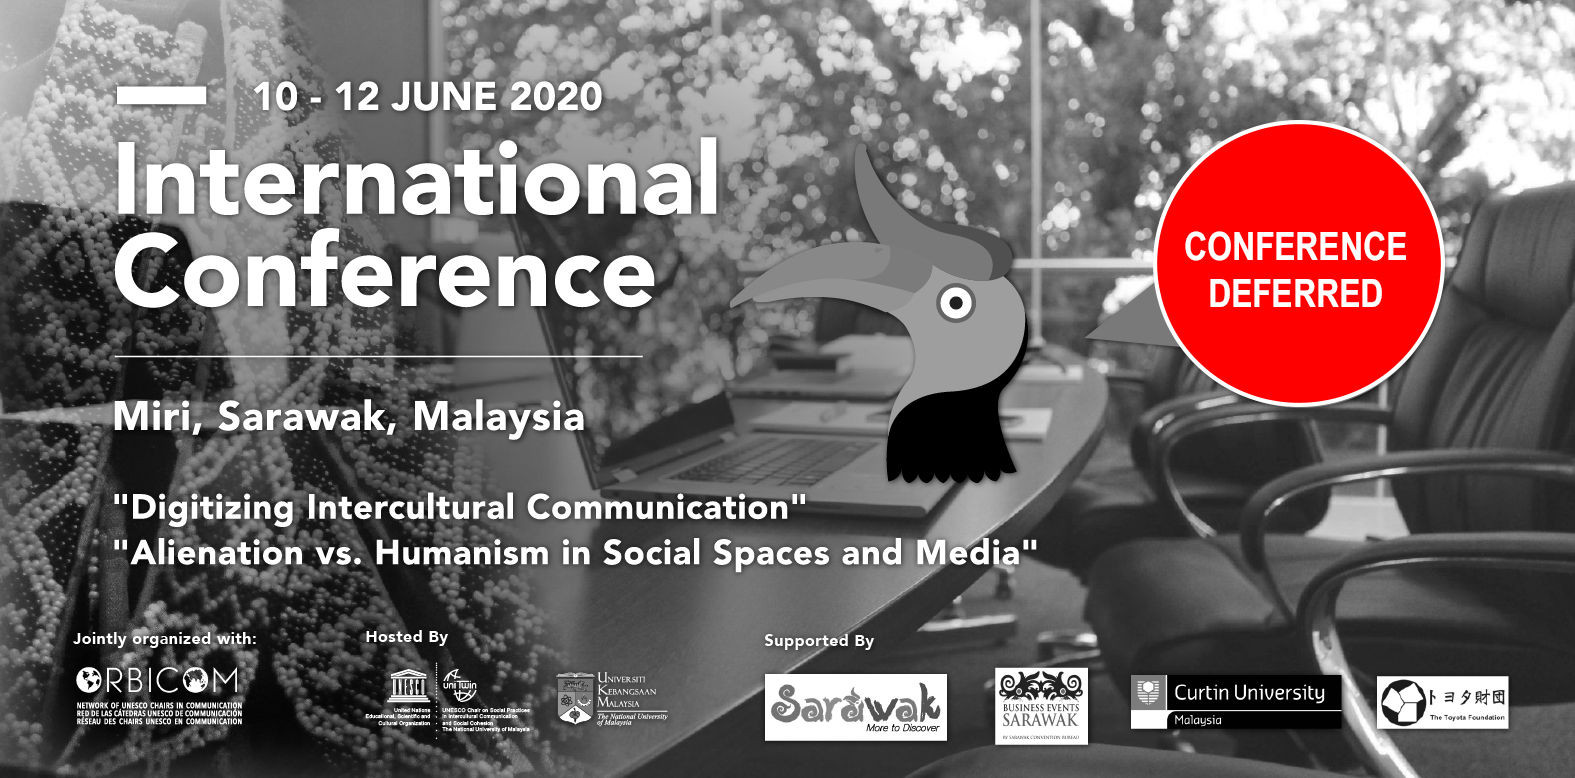 International Conference on Digitizing Intercultural Communication